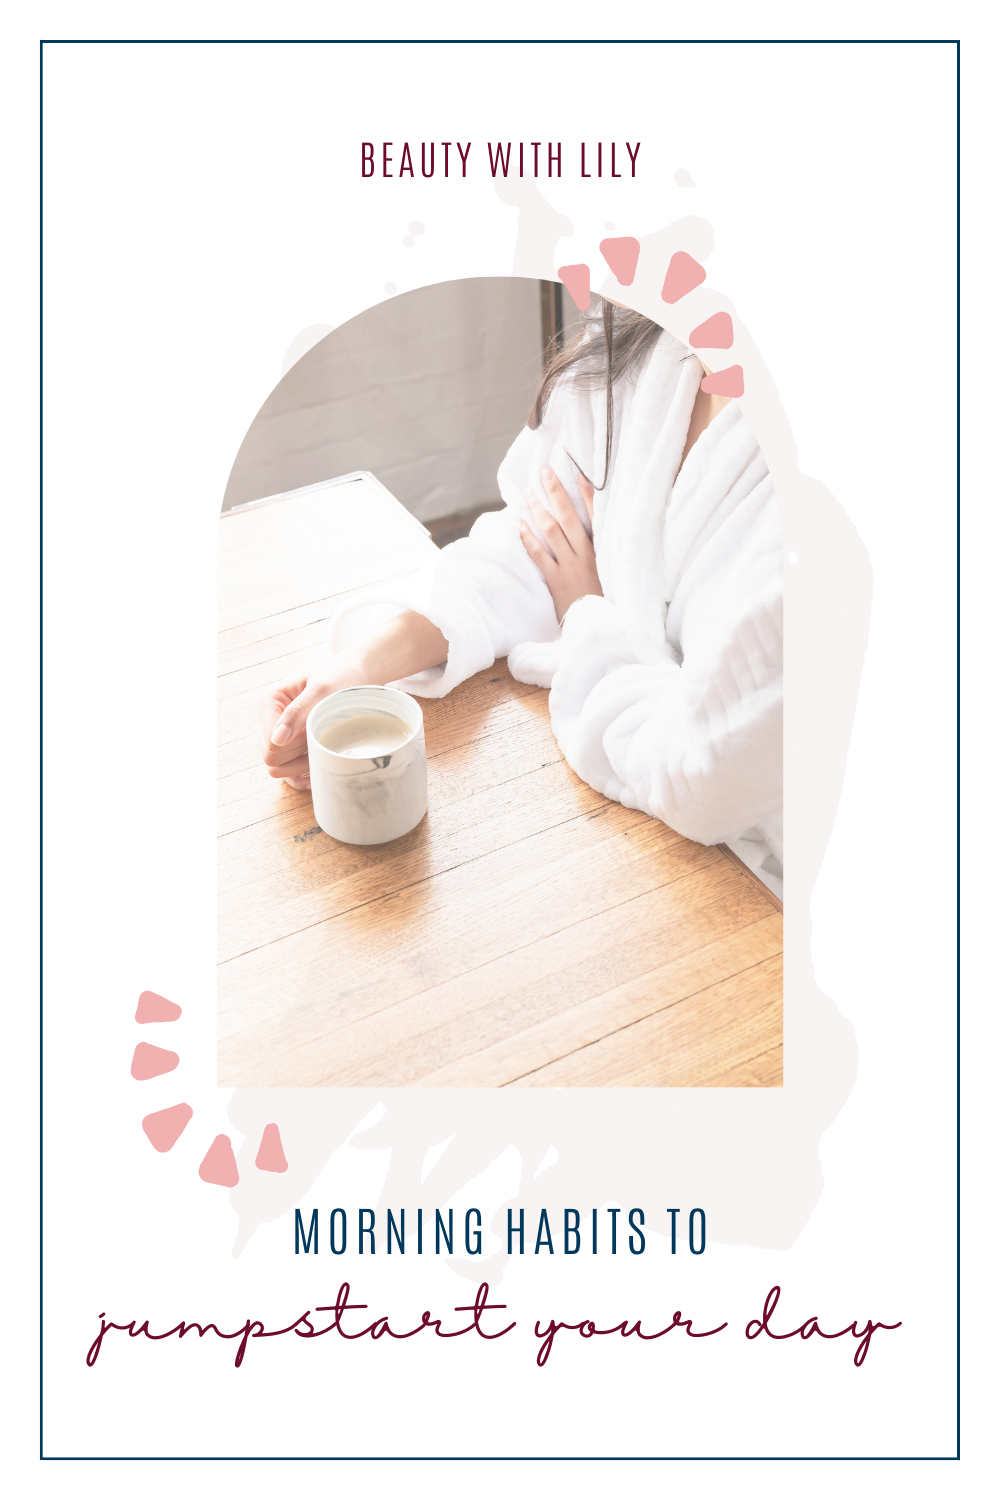 Morning Habits To Jumpstart Your Day // Motivation // Healthy Lifestyle // Healthy Habits // Affirmations // Morning Routine // Things To Add Into Your Morning Routine // Positive Changes | Beauty With Lily